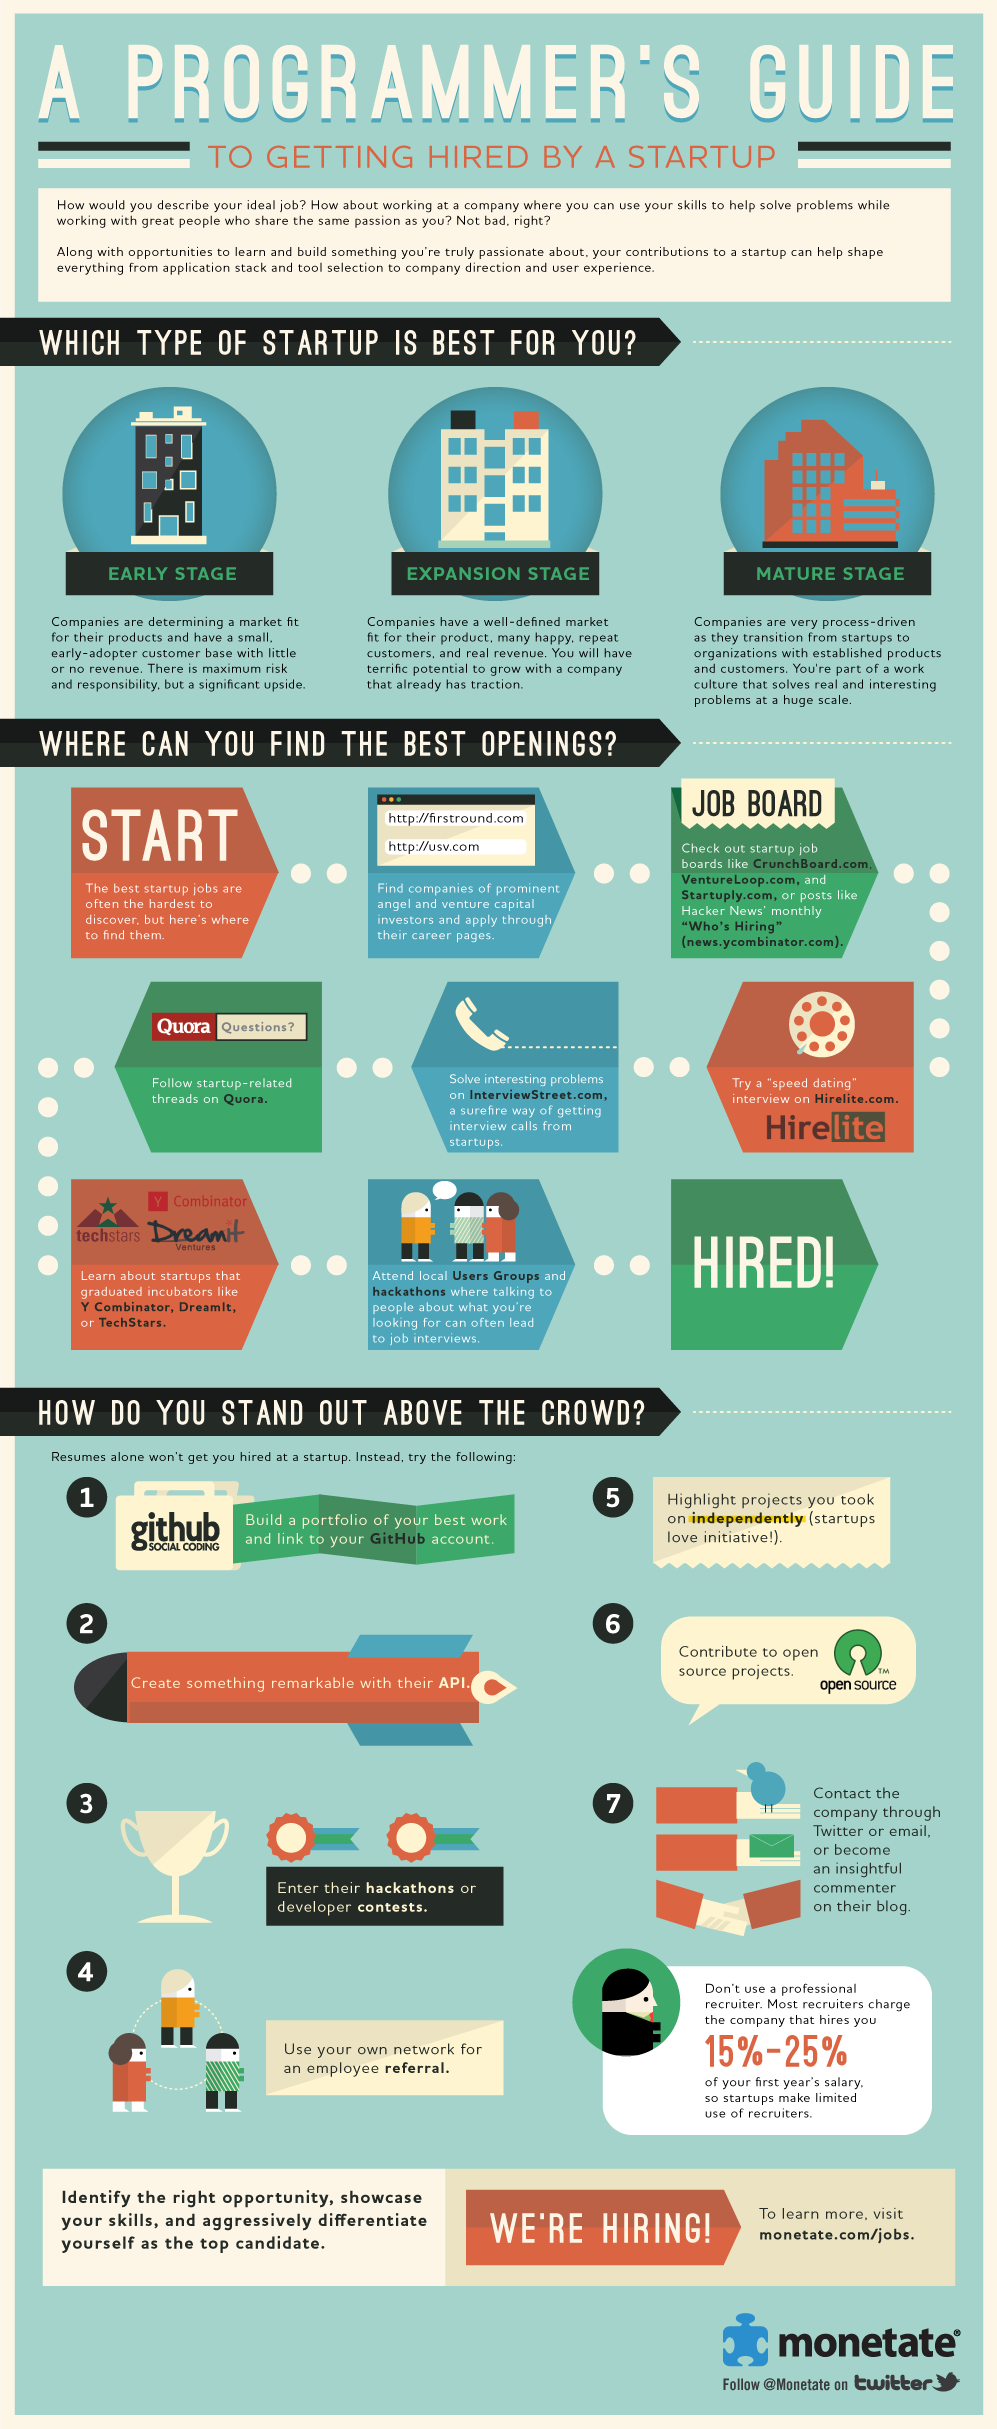 How to Get Hired by a Startup